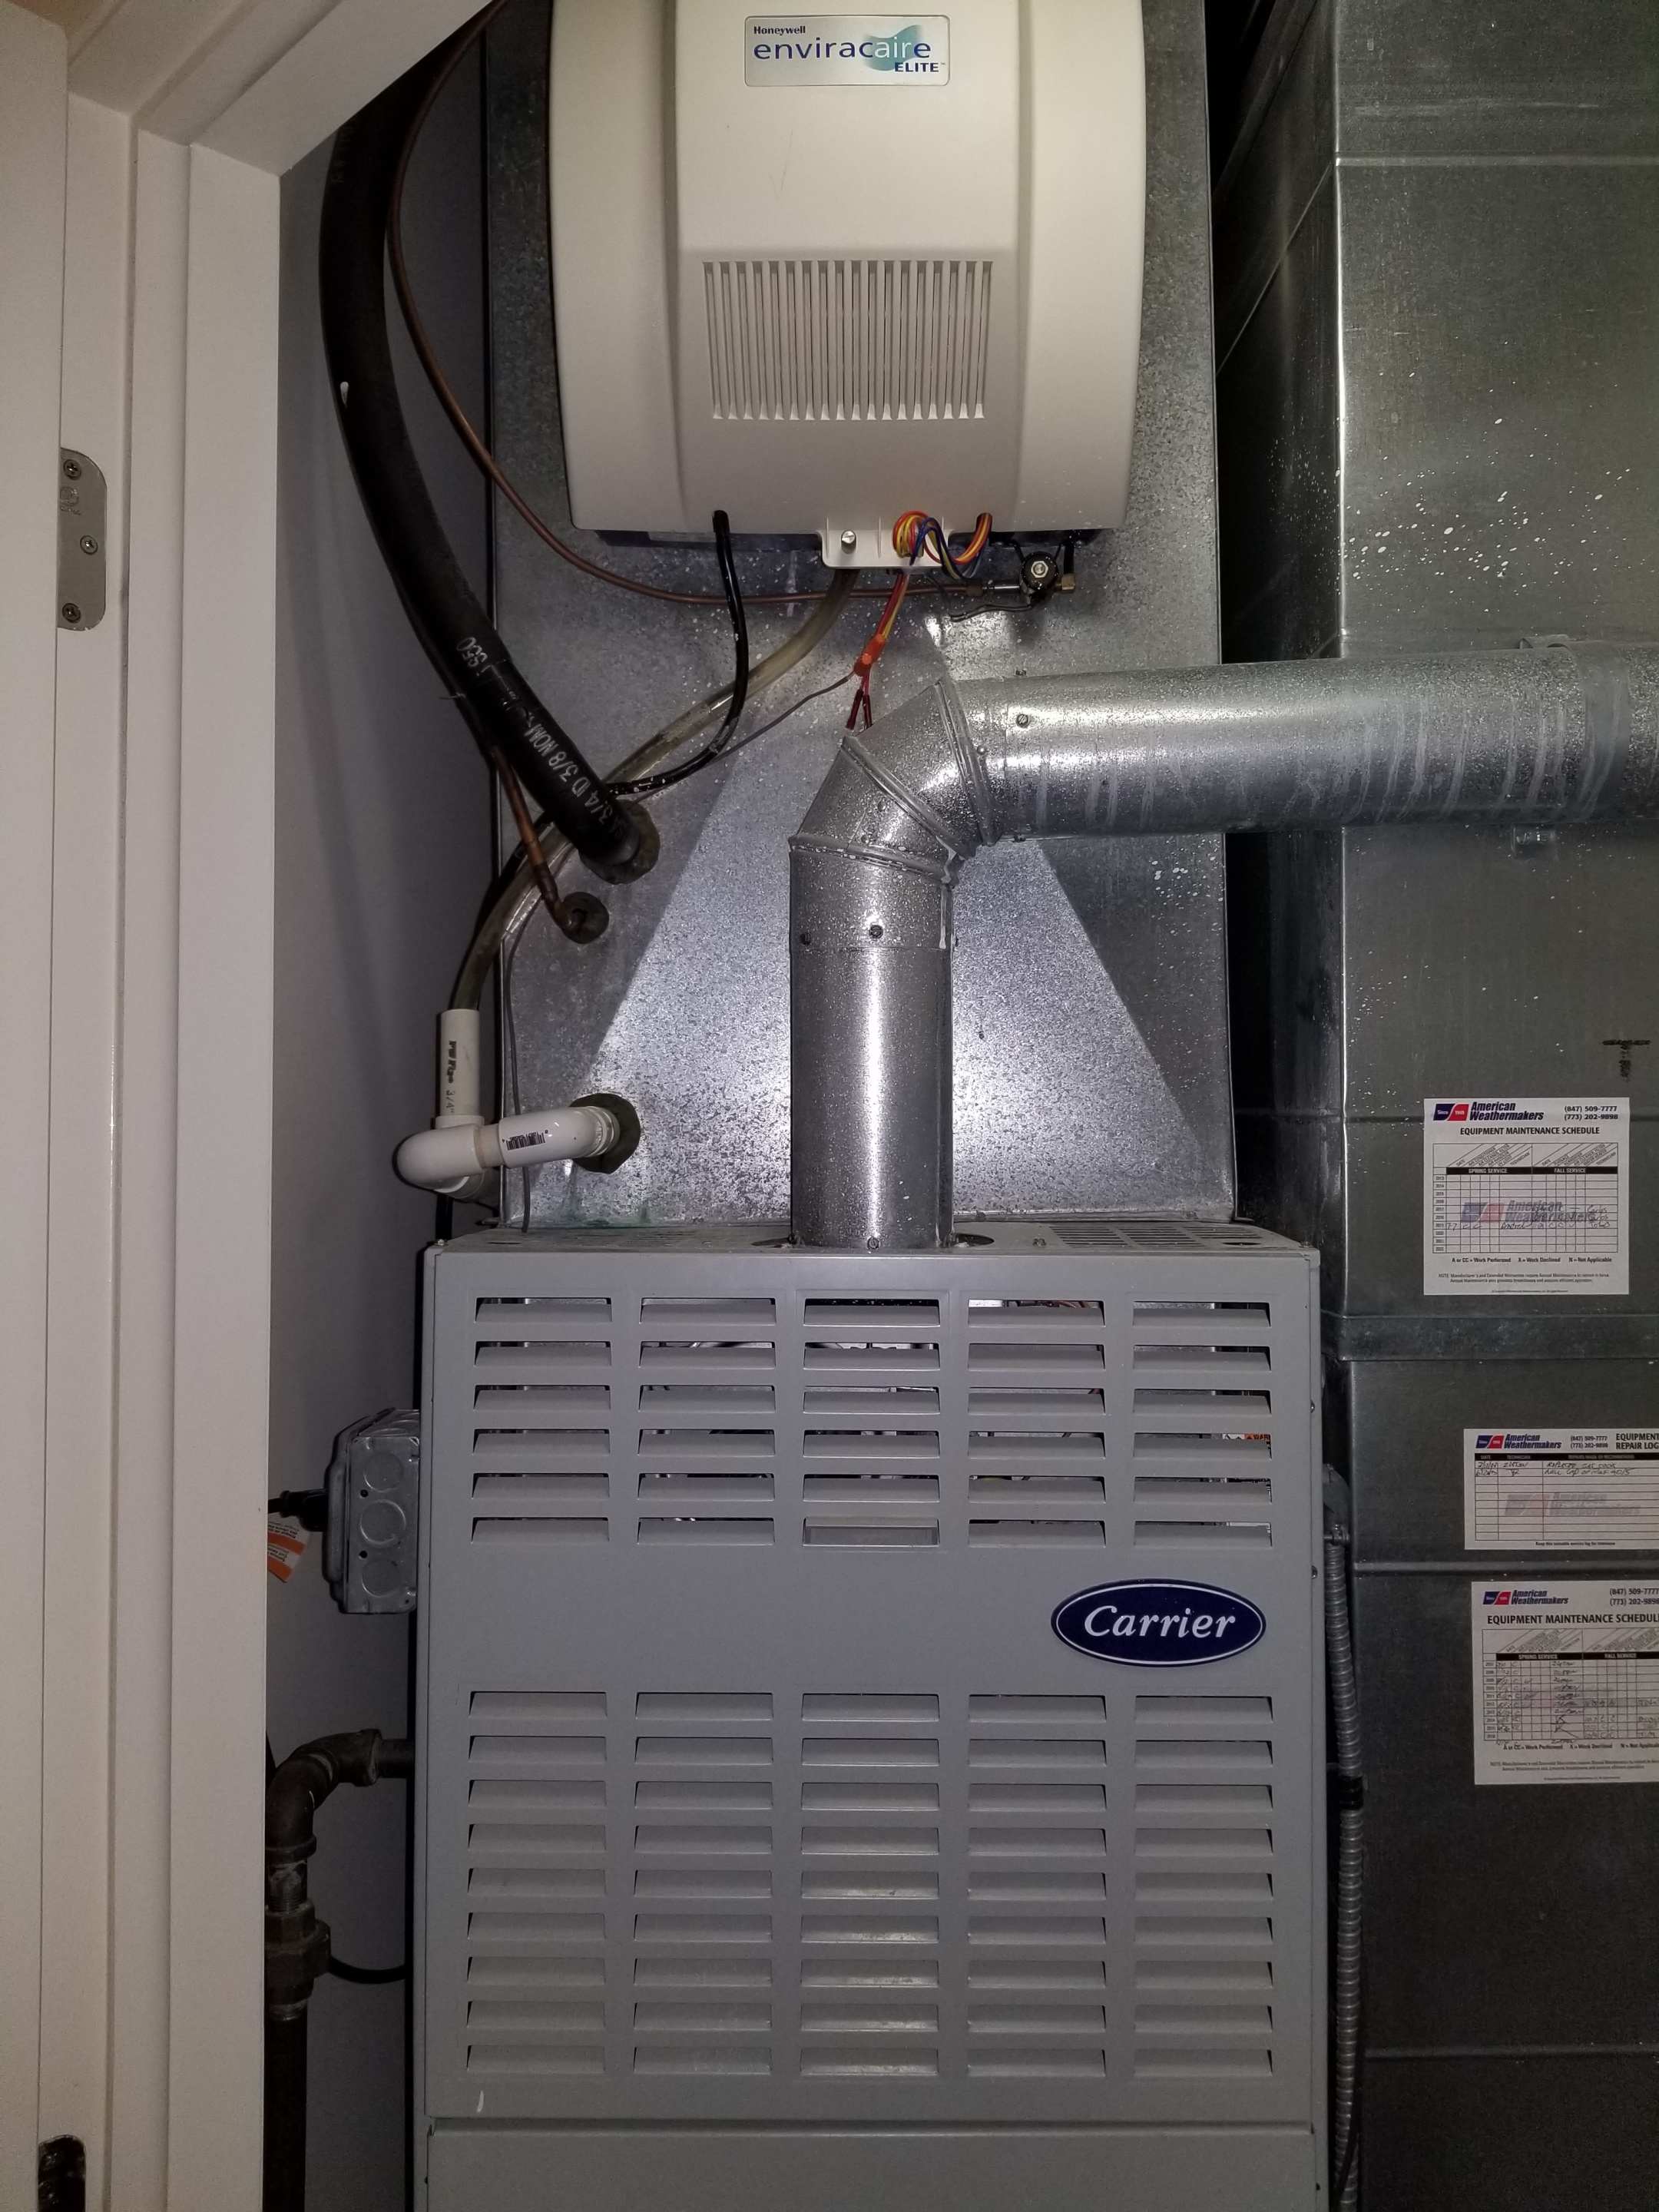 Performed annual maintenance on the Carrier furnace and Honeywell humidifier and made adjustments to improve the overall efficiency and life expectancy of the equipment